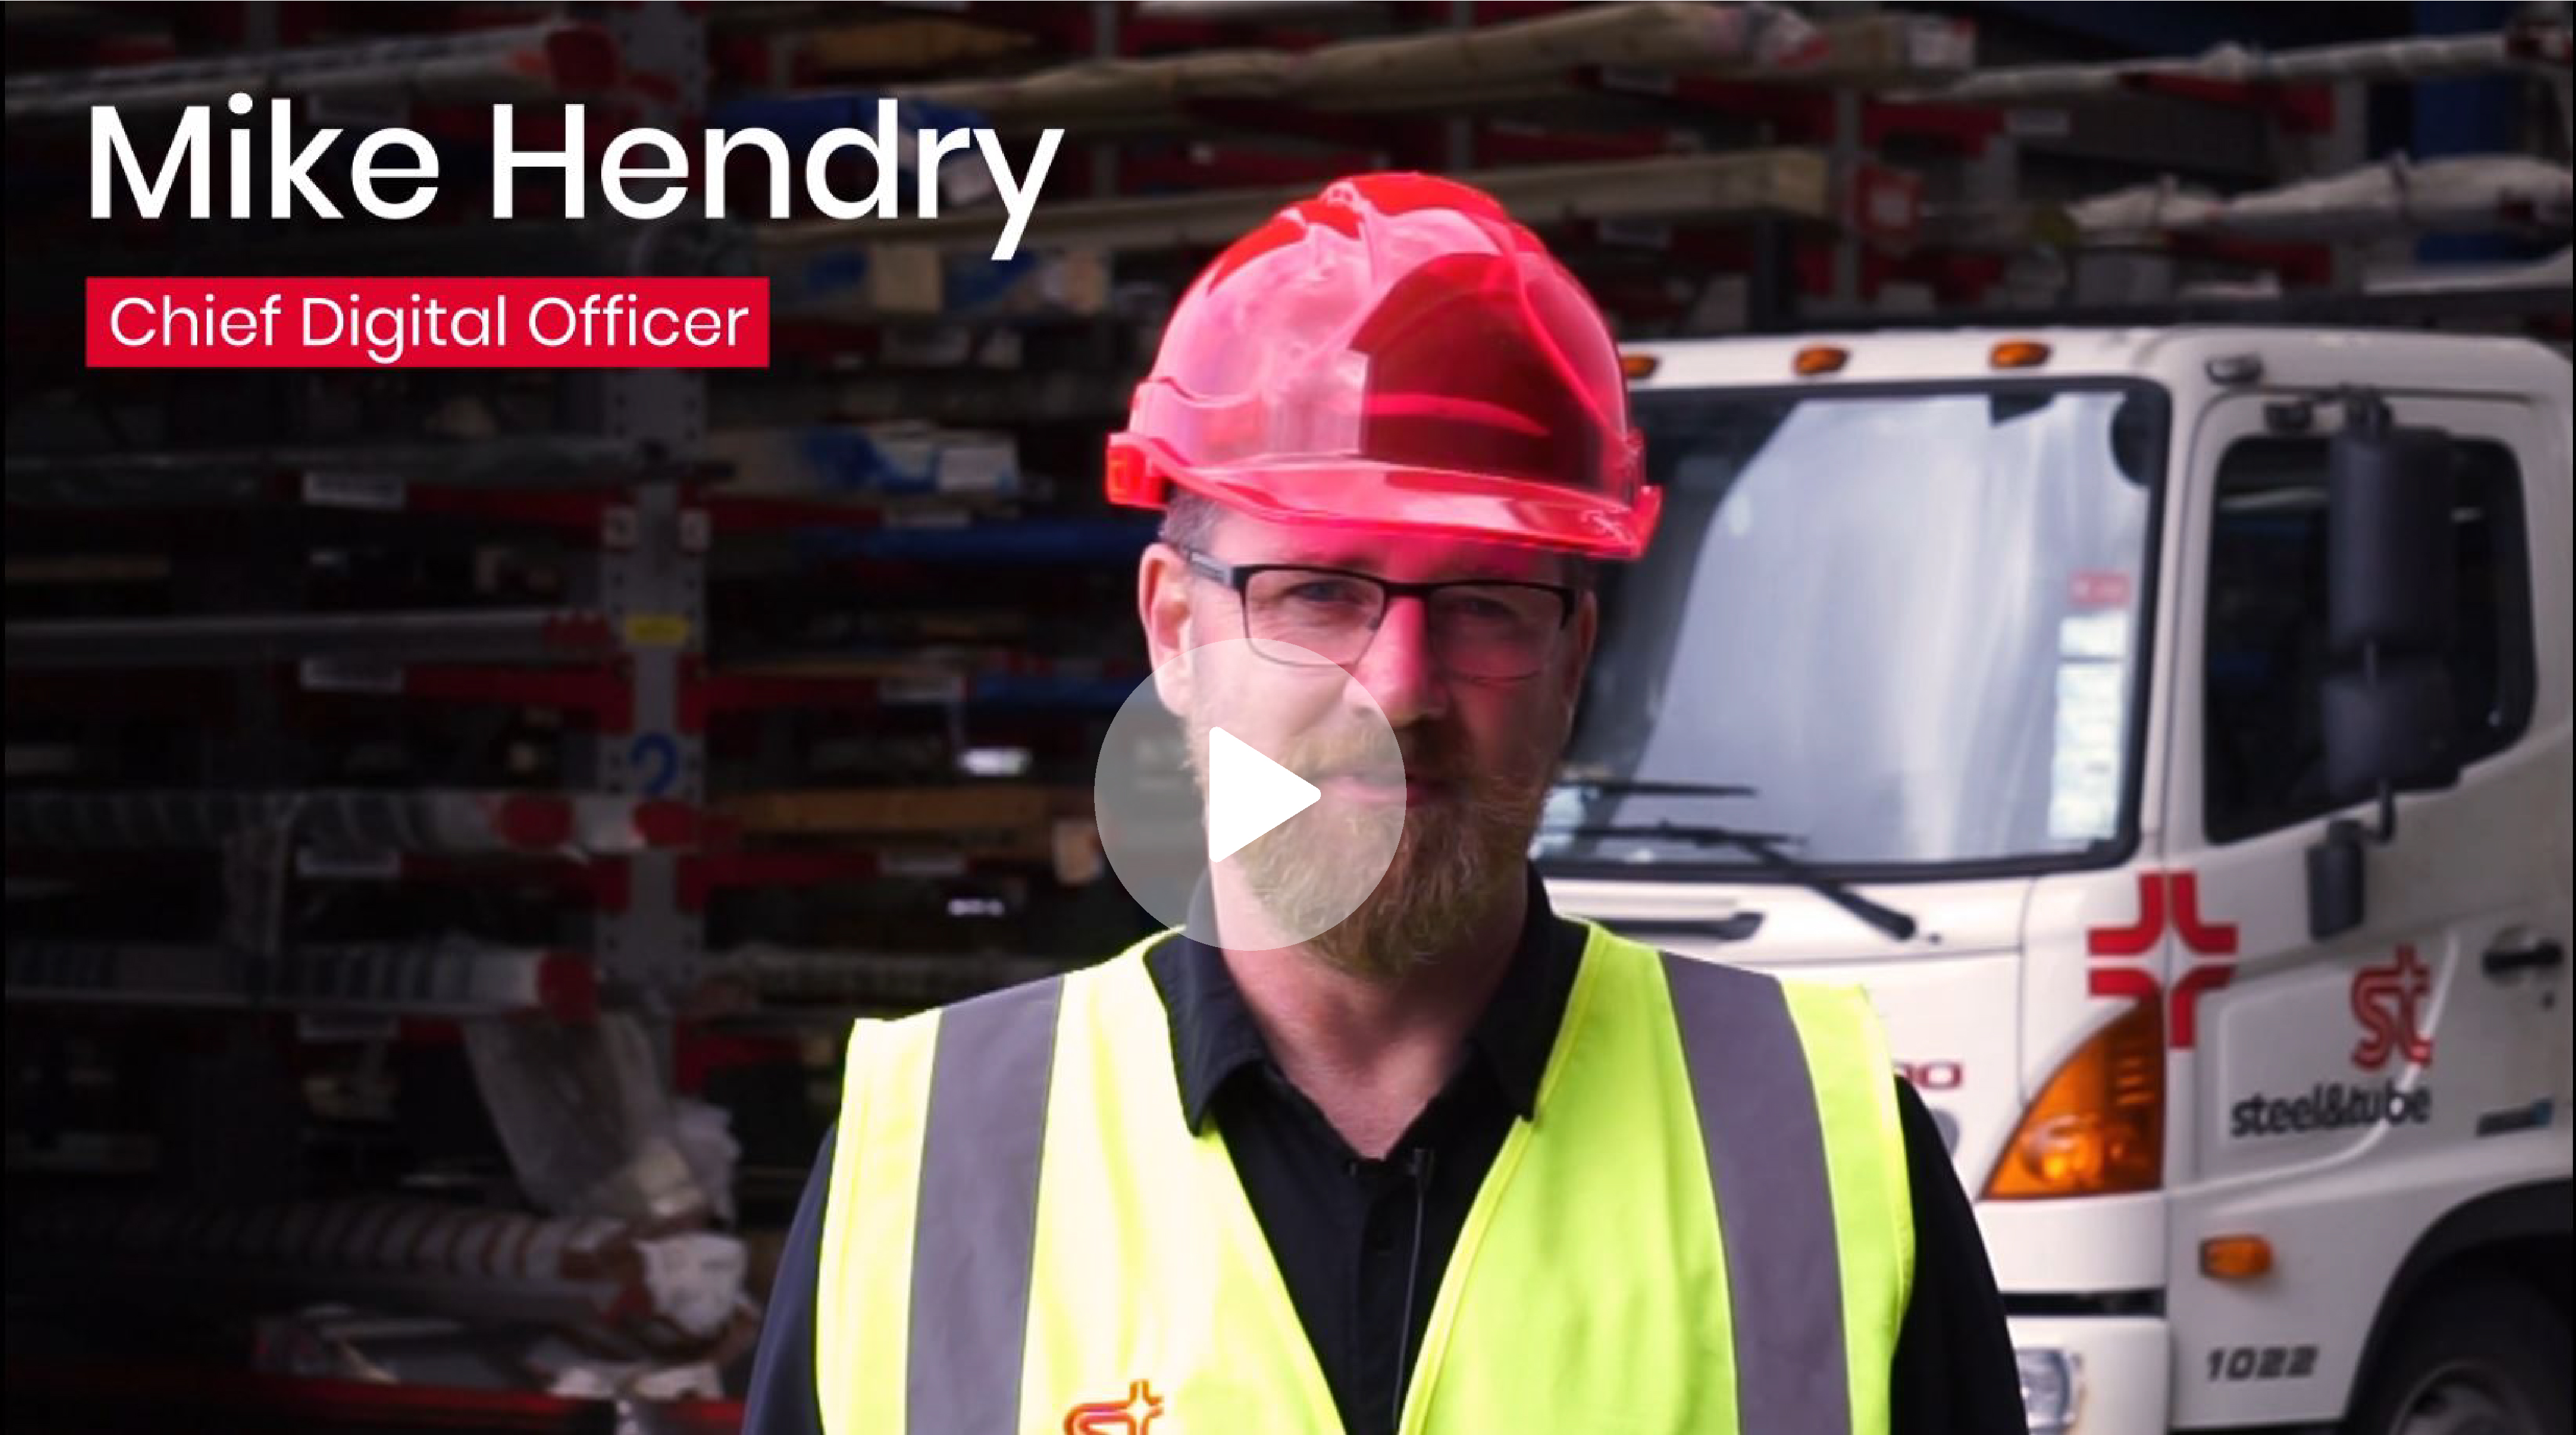 Mike Hendry Steel & Tube Success Story